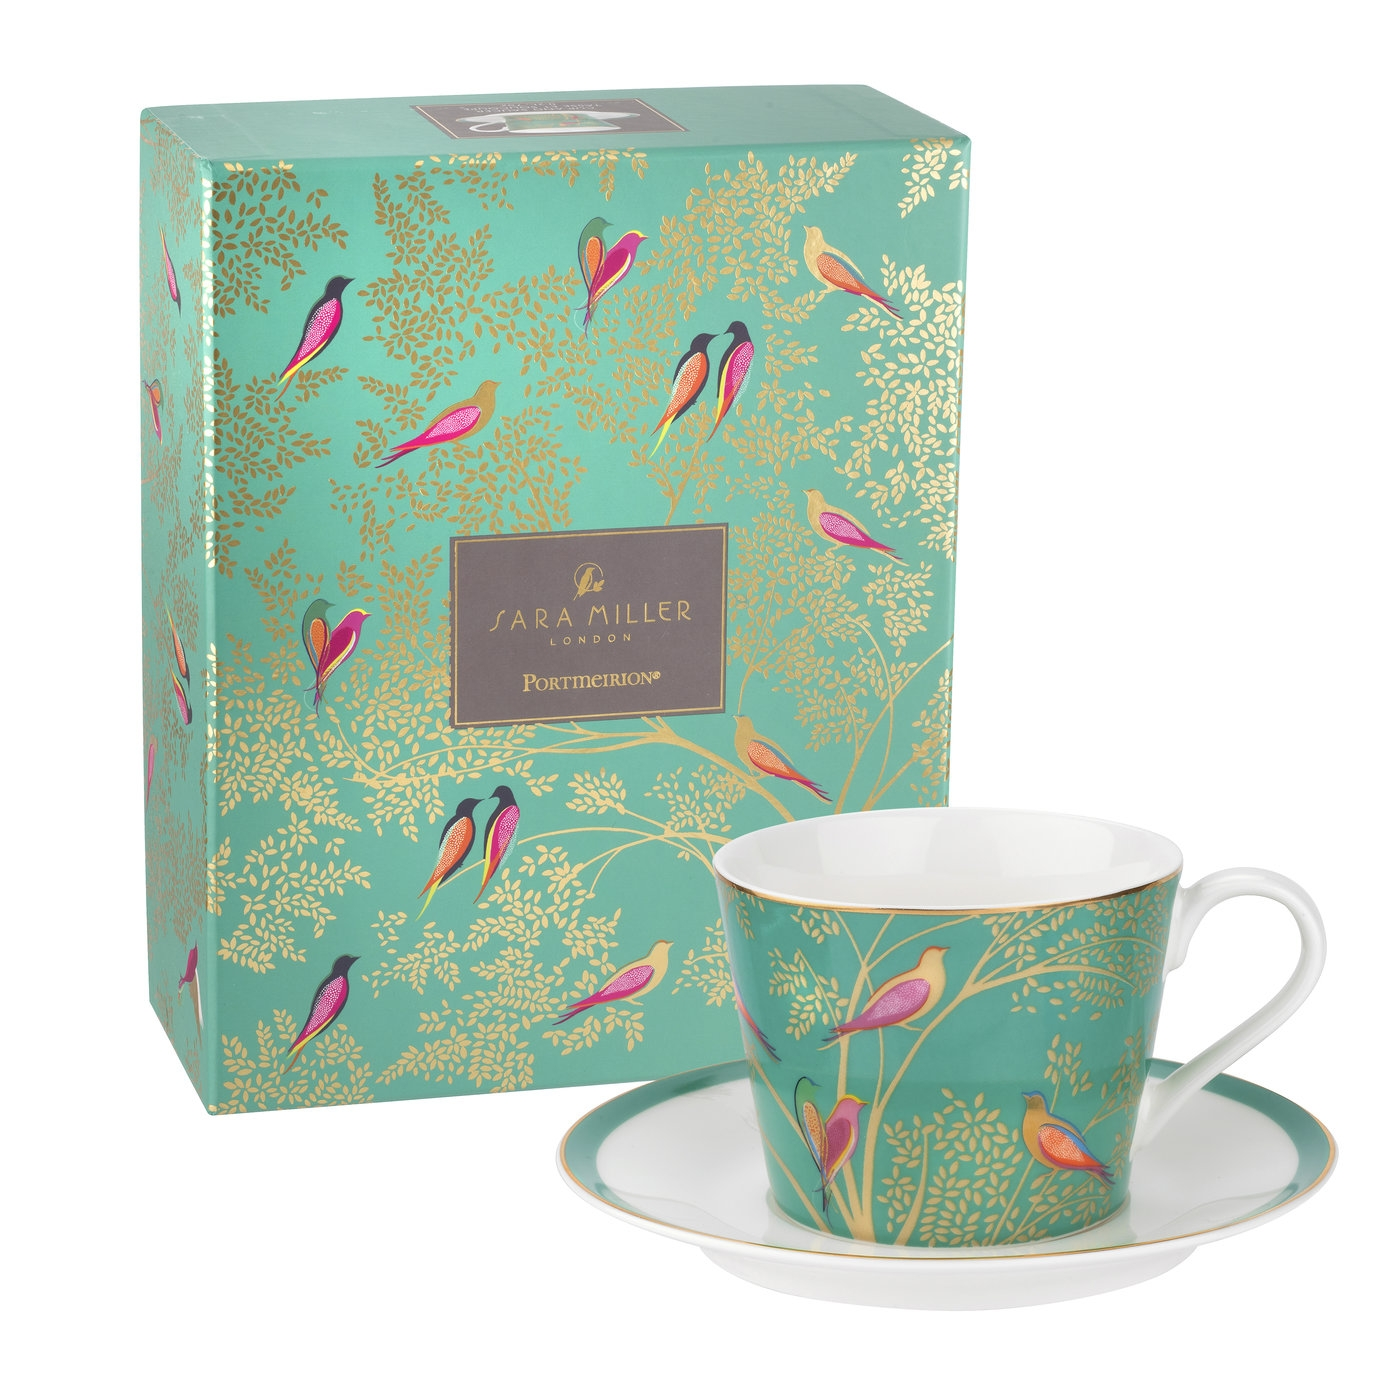 Sara Miller London for Portmeirion Chelsea Collection Tea Cup and Saucer image number 0